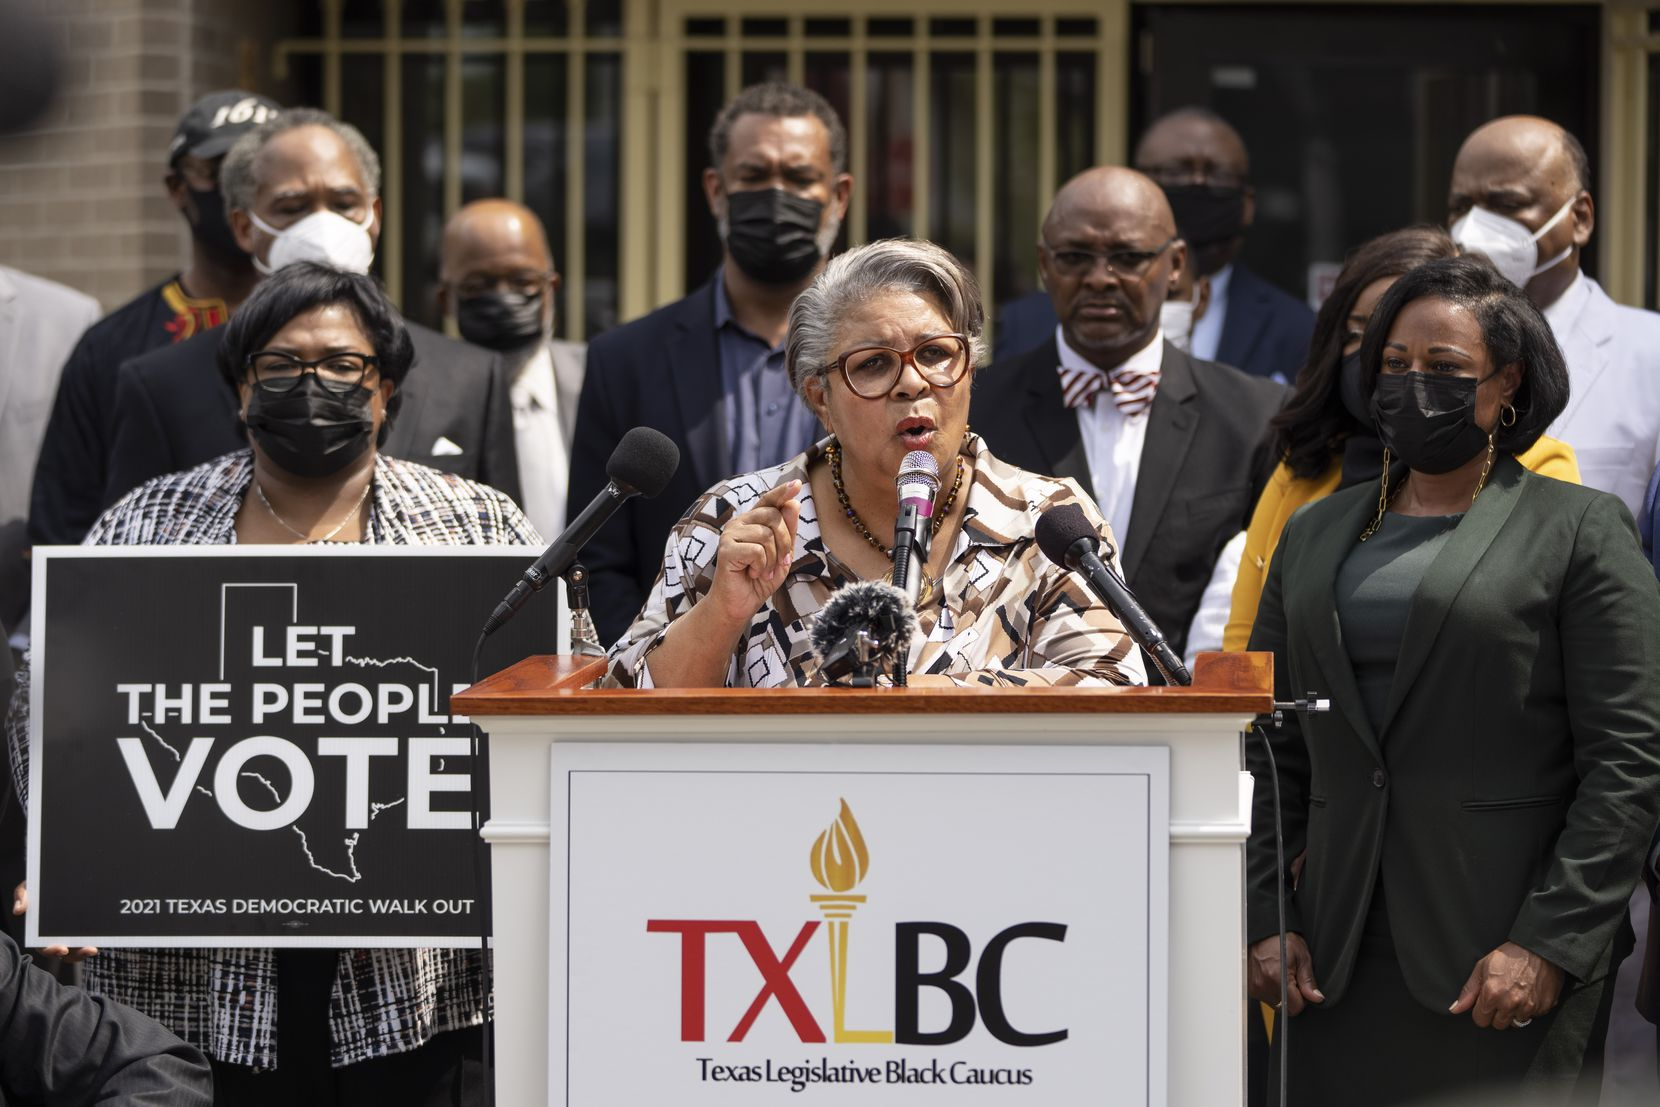 Surrounded by local faith leaders and fellow members of the Texas Legislative Black Caucus, state Rep. Senfronia Thompson, D-Houston, speaks during a news conference about voting rights at Unity Baptist Church on July 26, 2021 in Washington, DC. Local faith leaders called on Black churches across the country to help the Texans fight GOP-backed restrictions on voting.